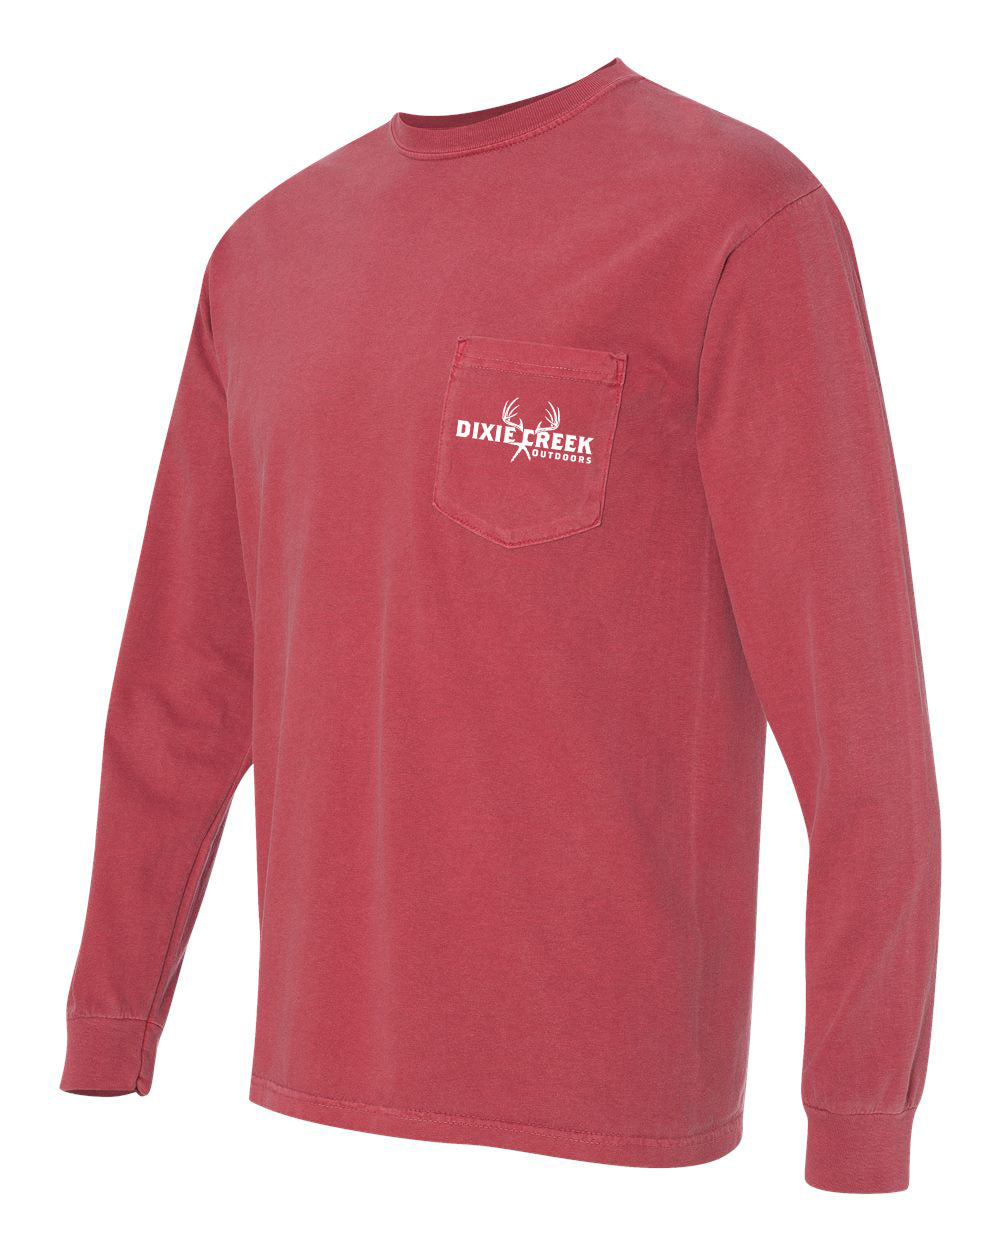 Spring Fling - LS Comfort Colors Pocket Tee